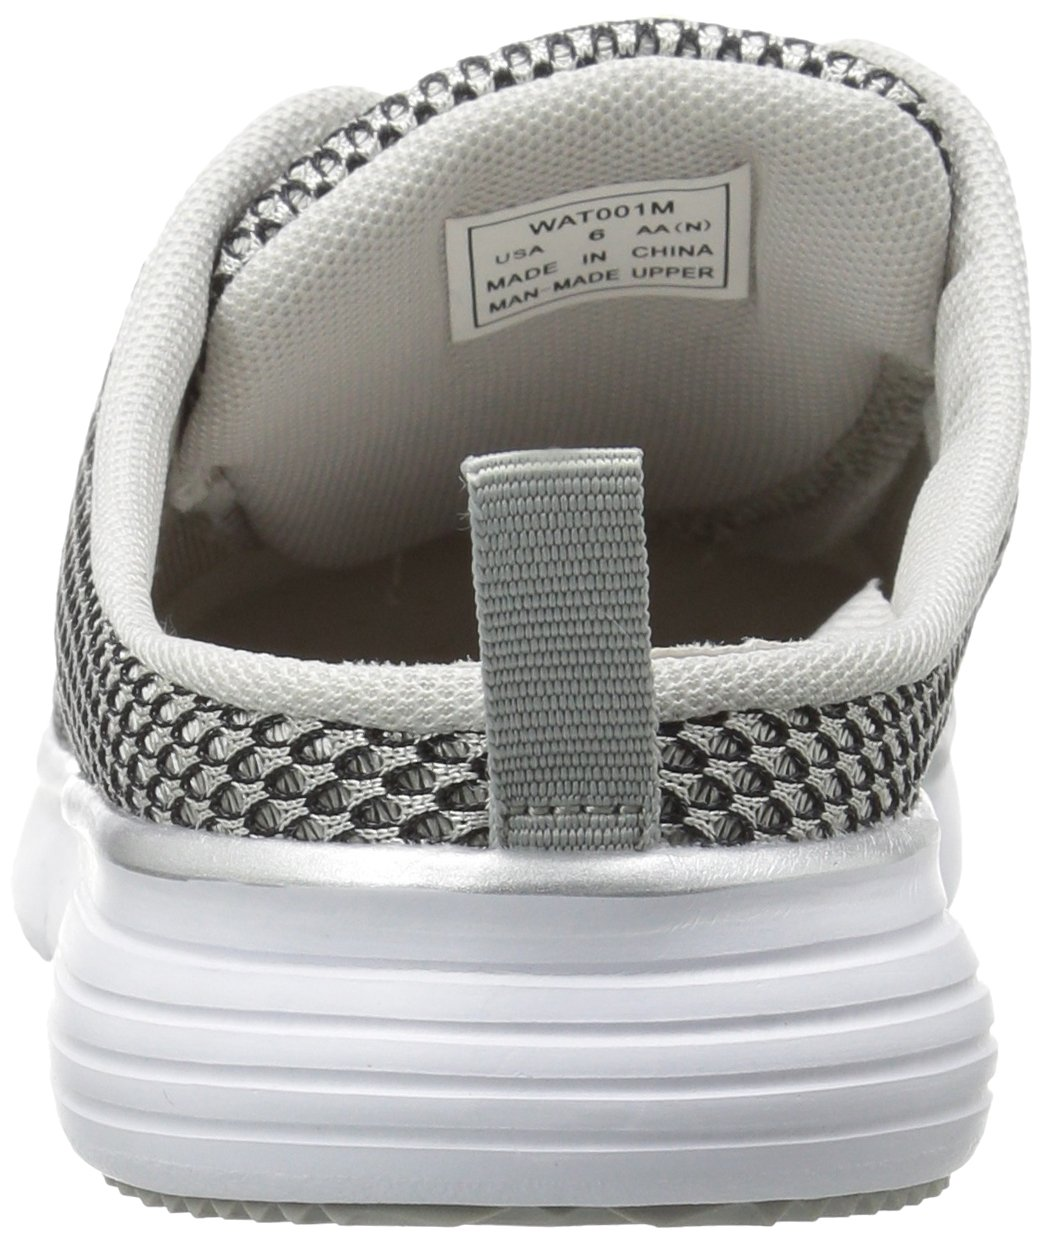 Propet Women's TravelFit Slide Walking Shoe B01IOEX8CK 11 4E US|Silver/Black